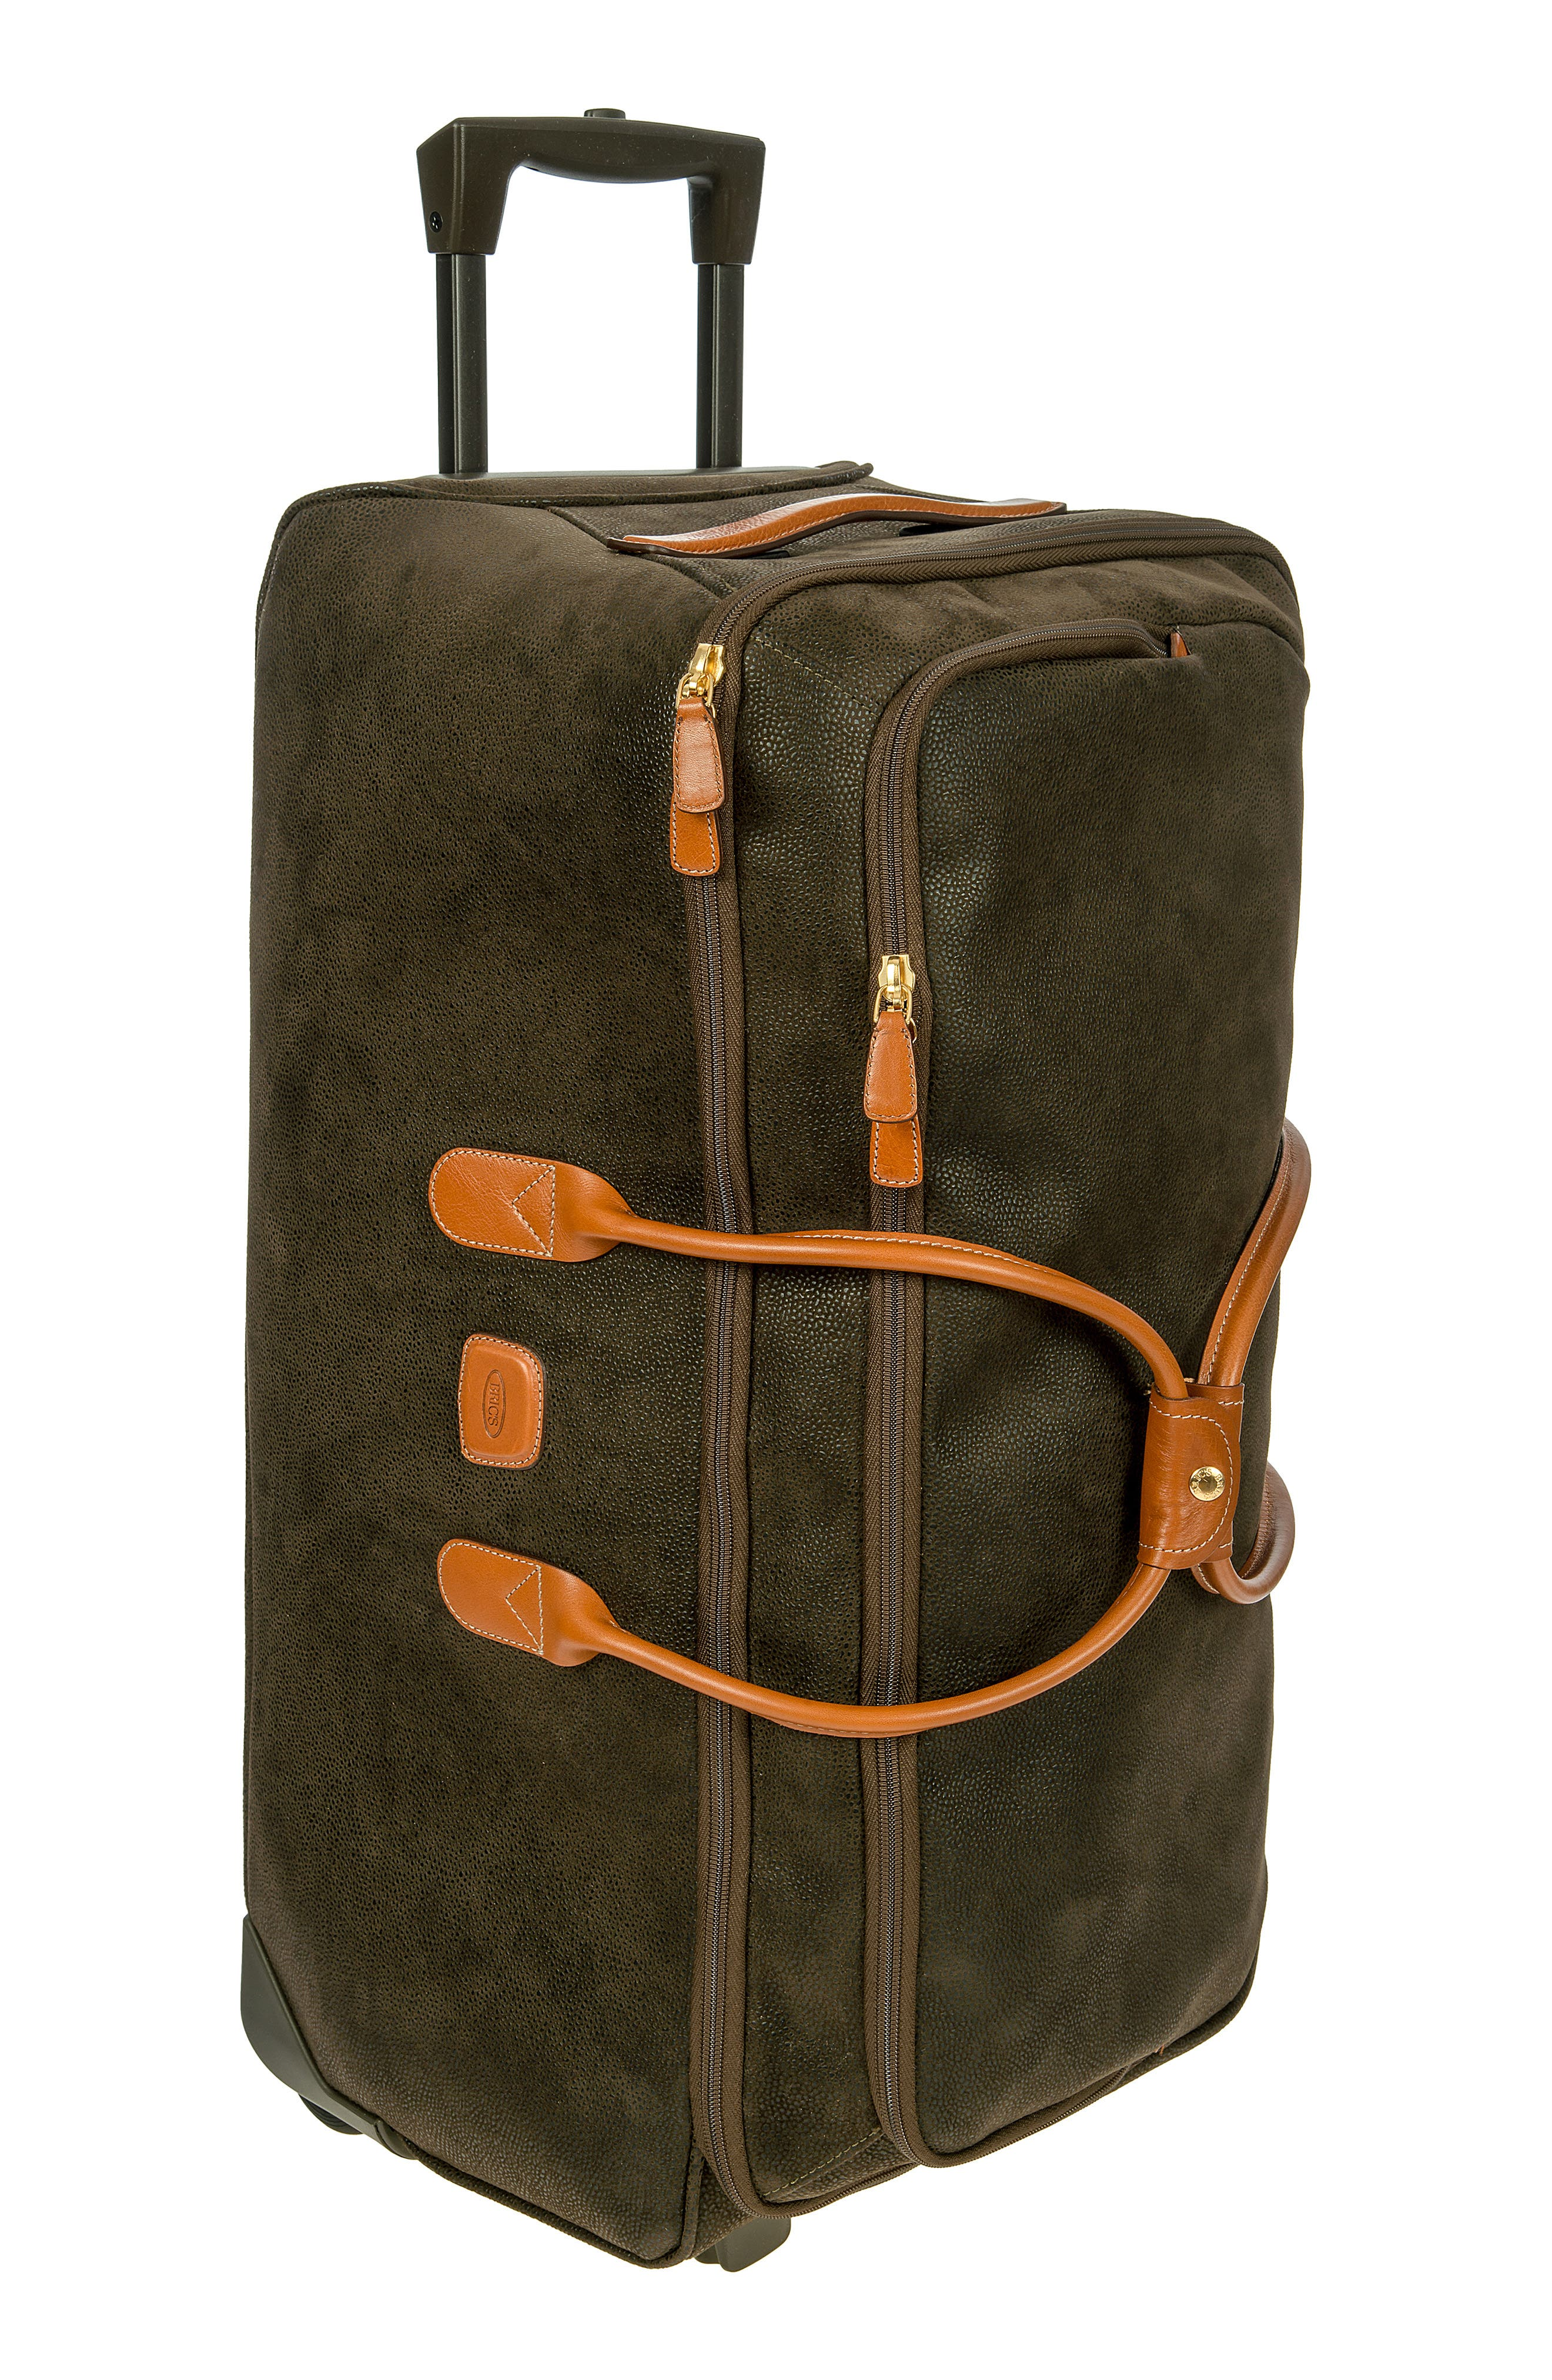 BRIC'S Brics Life Collection 28-Inch Rolling Duffle Bag, Main, color, OLIVE